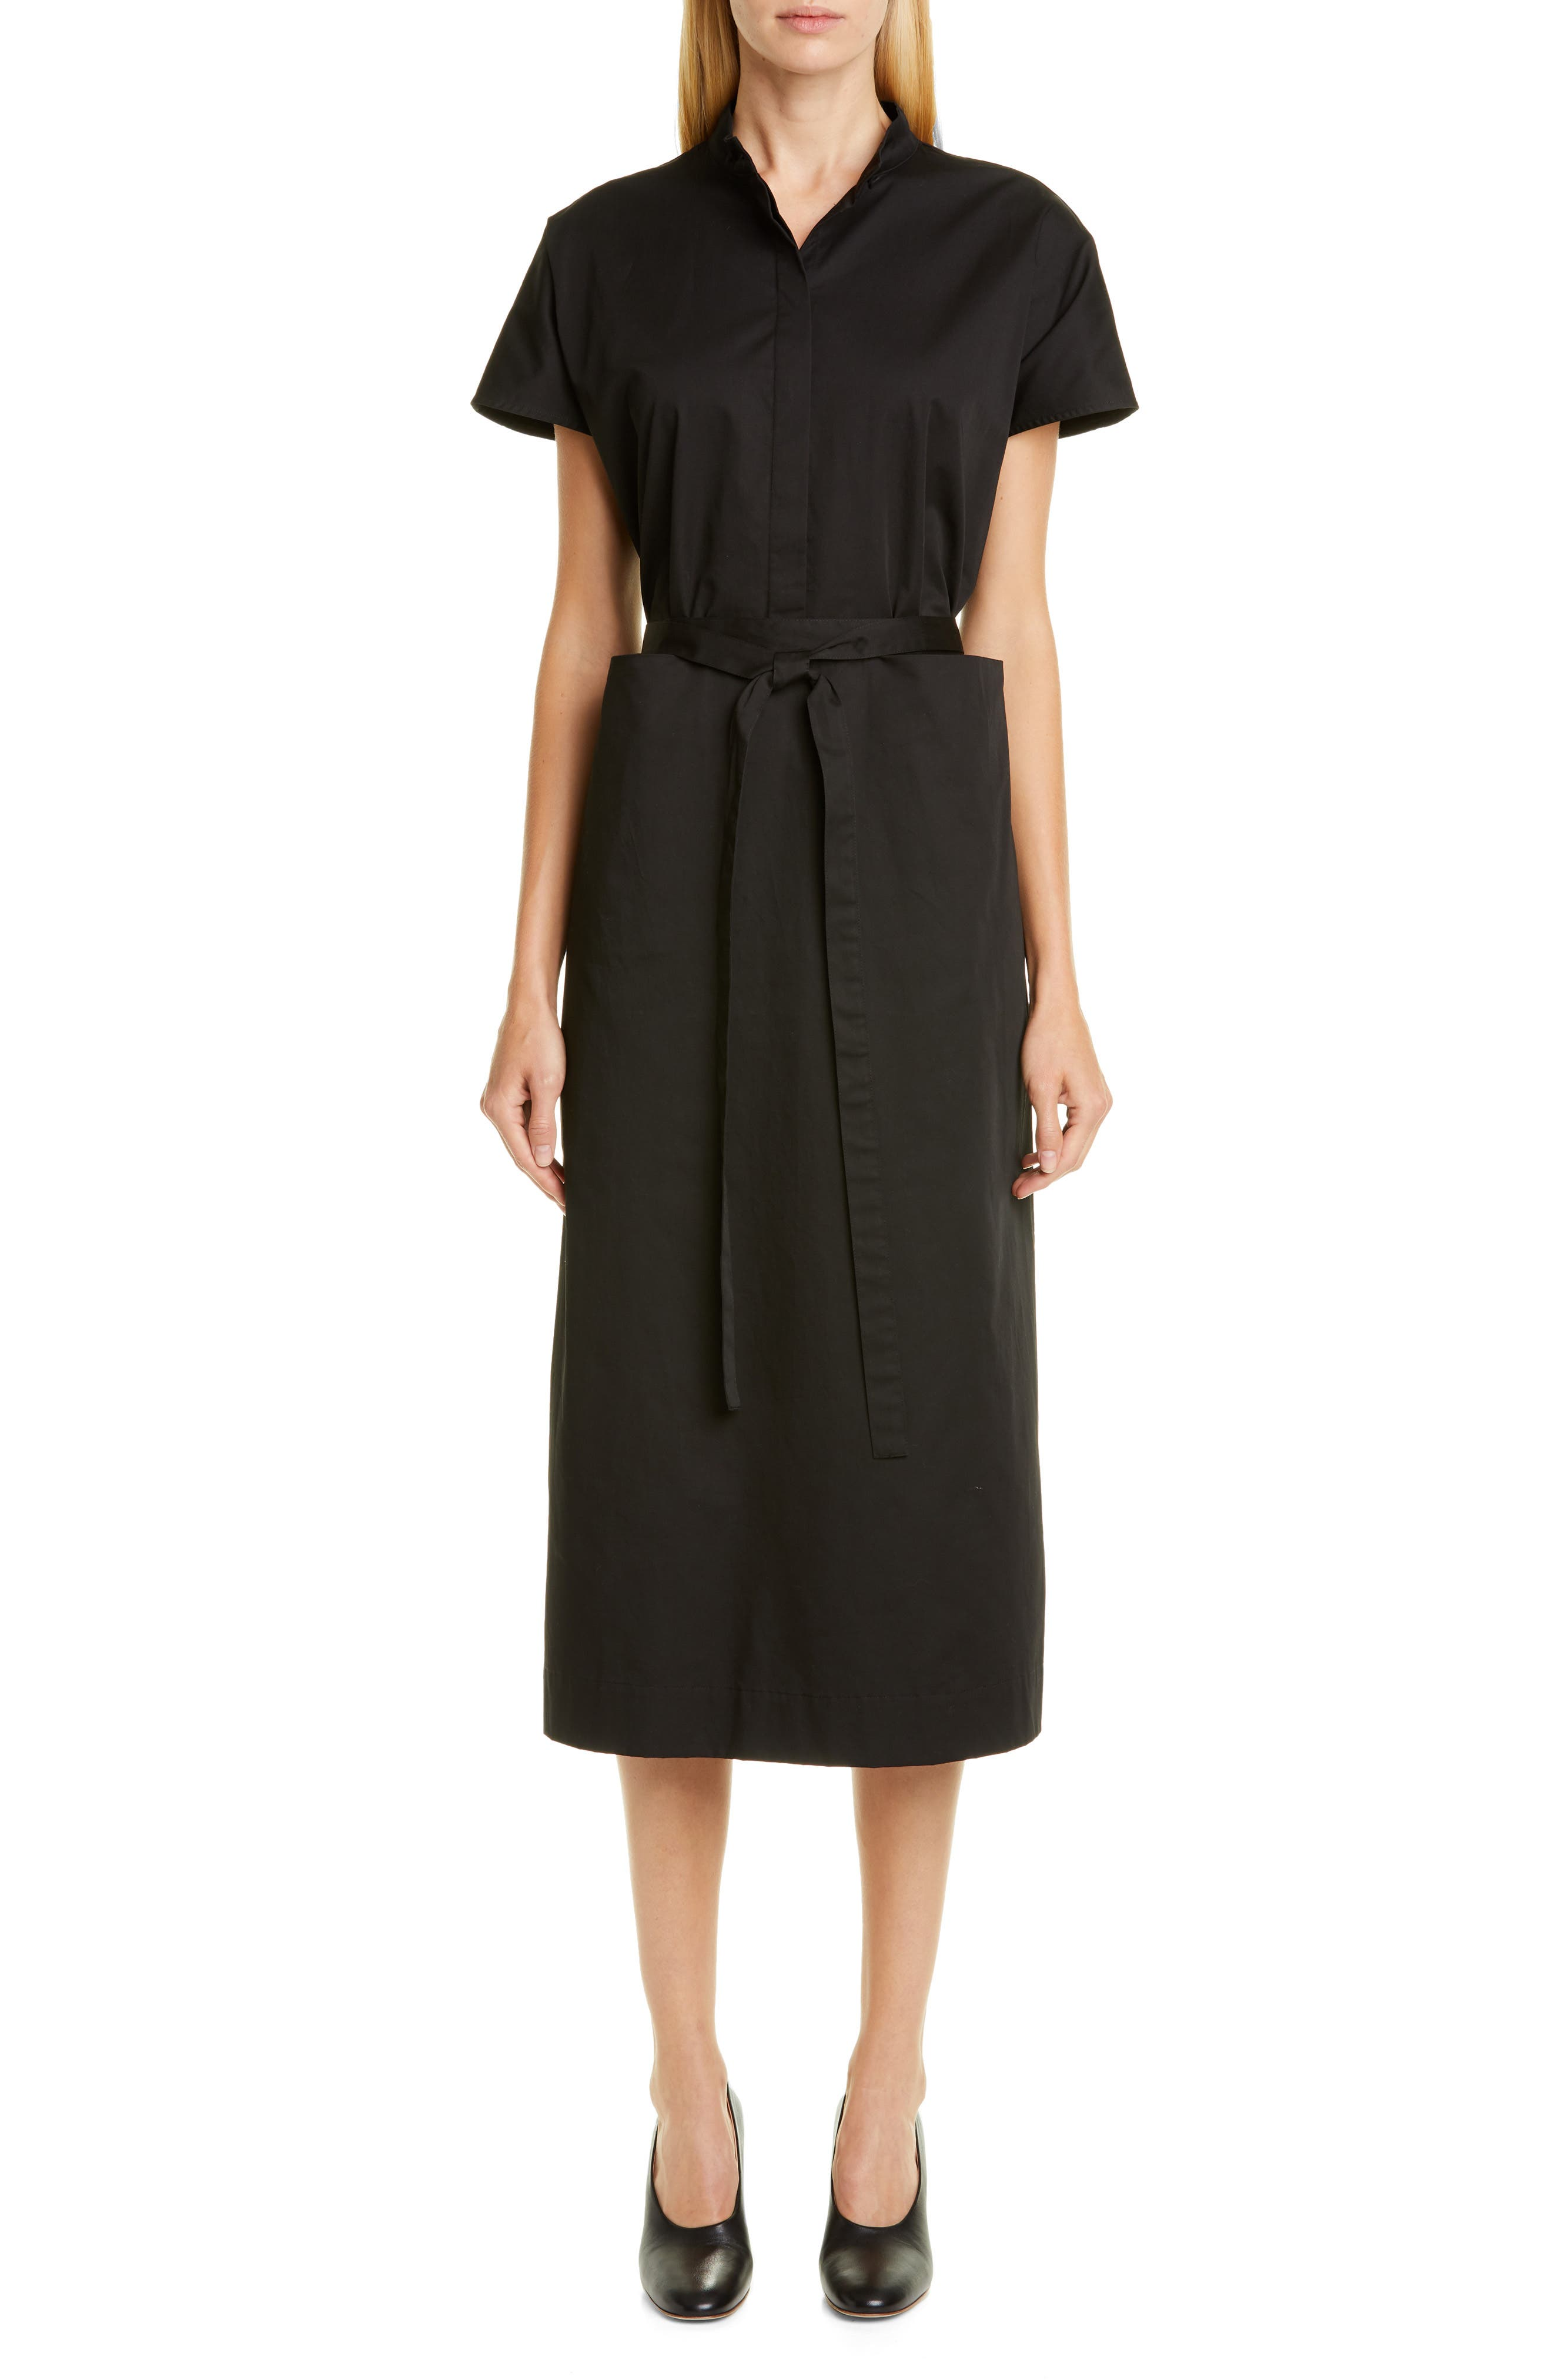 Co Belted Cotton Shirtdress, Black